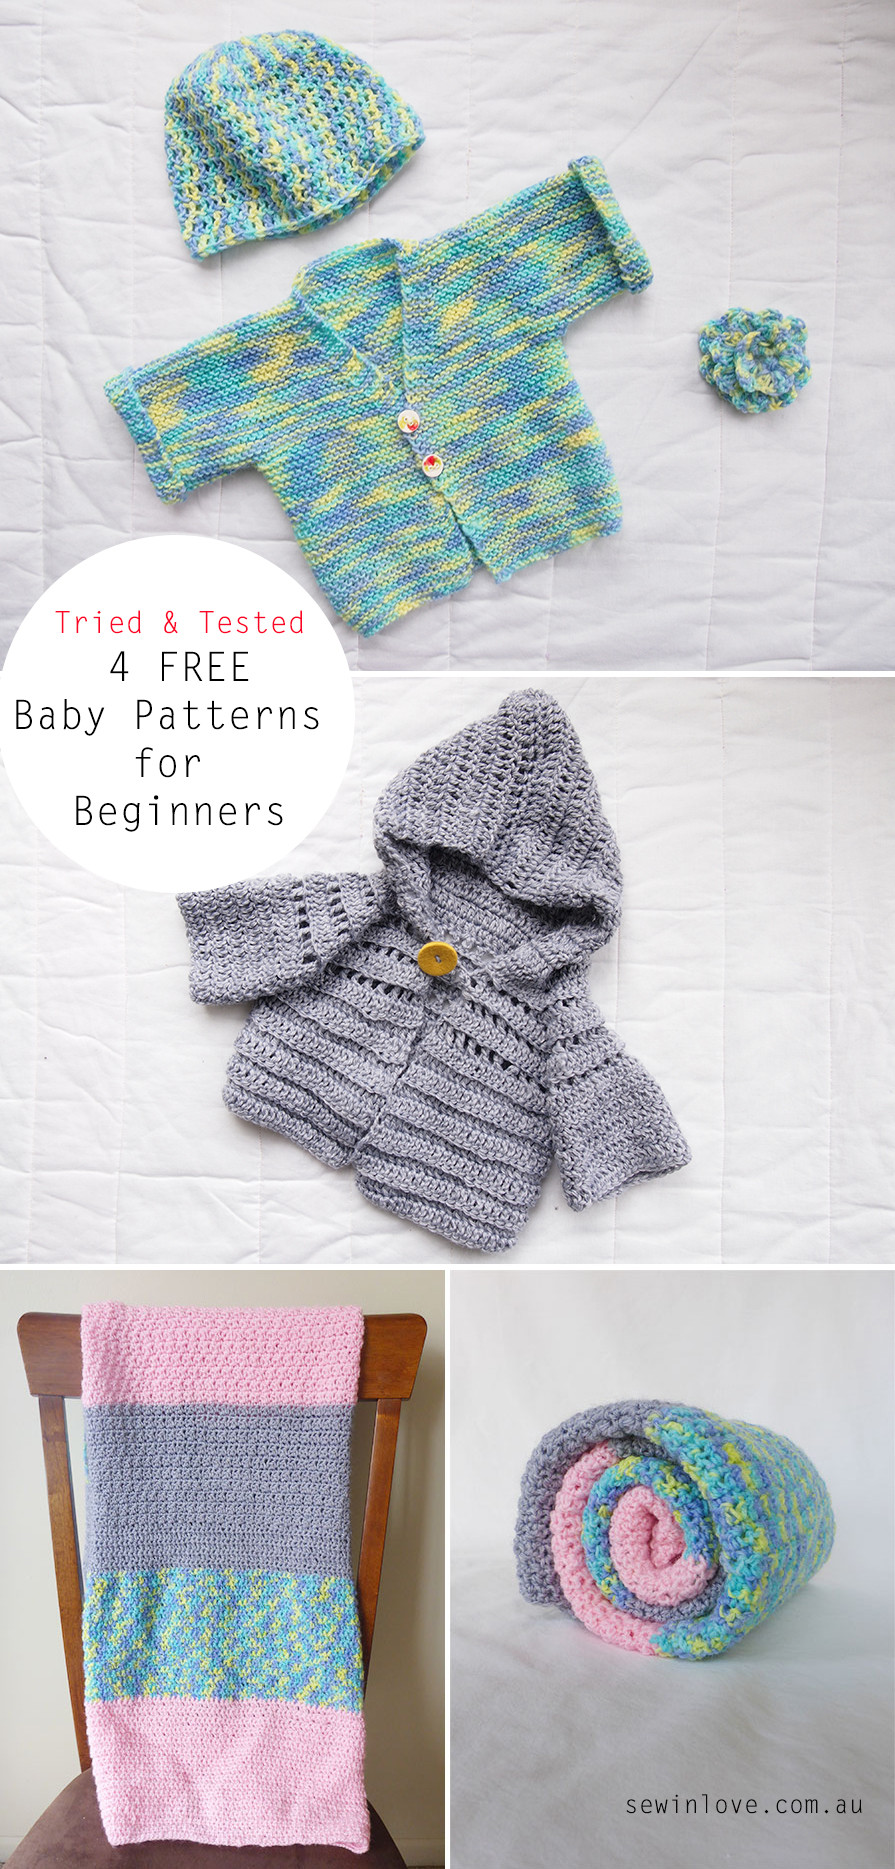 Best Of Tried and Tested Free Baby Knitting and Crochet Patterns Knitting and Crochet Patterns Of Adorable 46 Ideas Knitting and Crochet Patterns